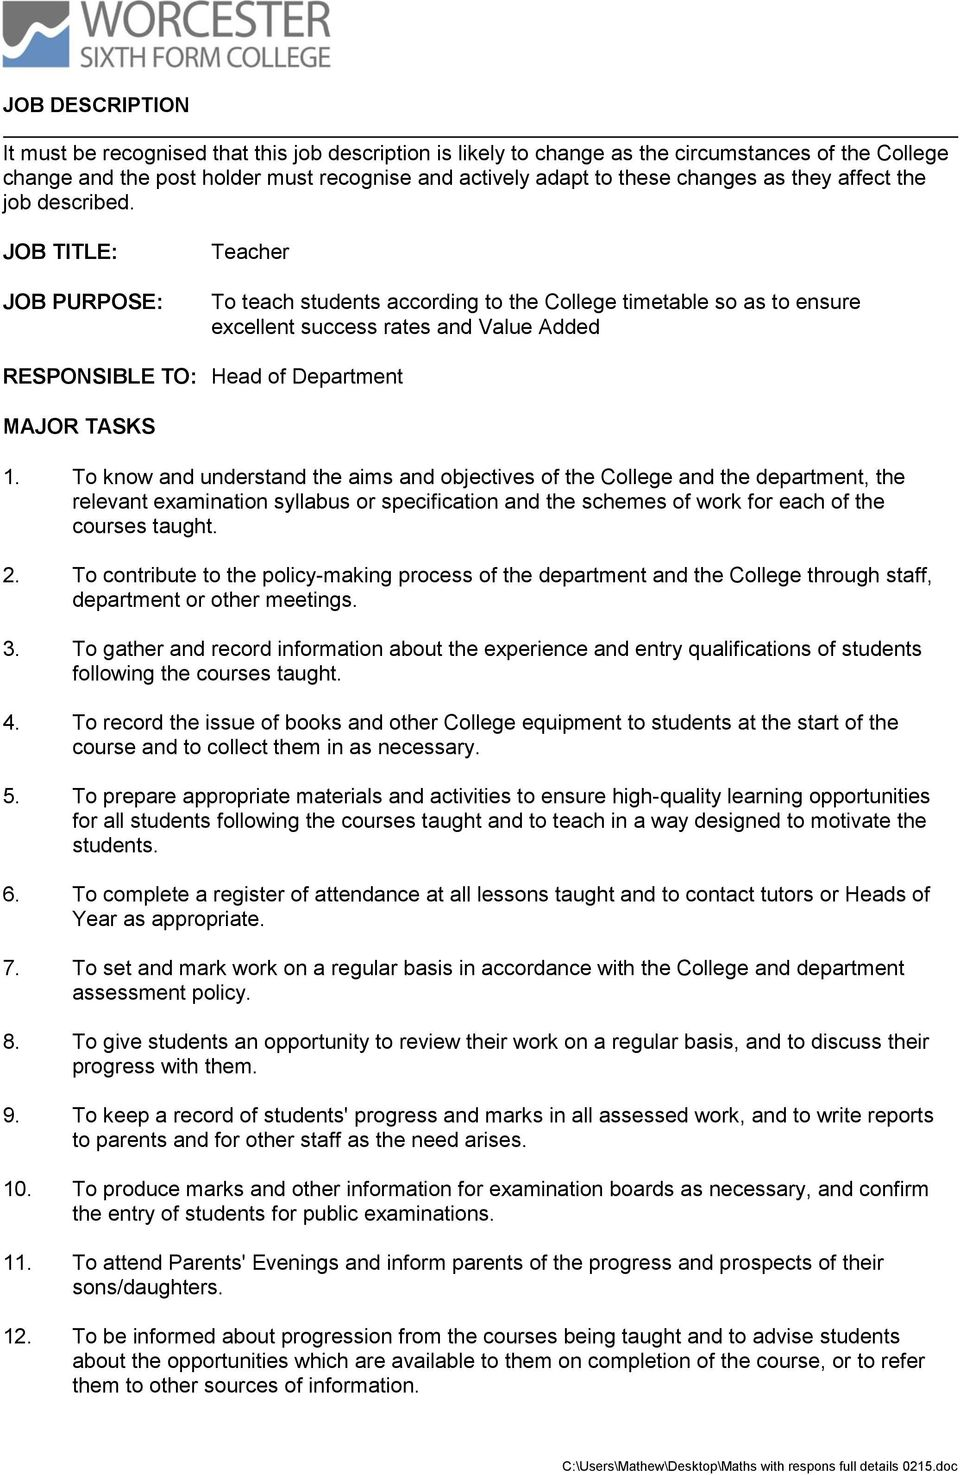 JOB TITLE: JOB PURPOSE: Teacher To teach students according to the College timetable so as to ensure excellent success rates and Value Added RESPONSIBLE TO: Head of Department MAJOR TASKS 1.